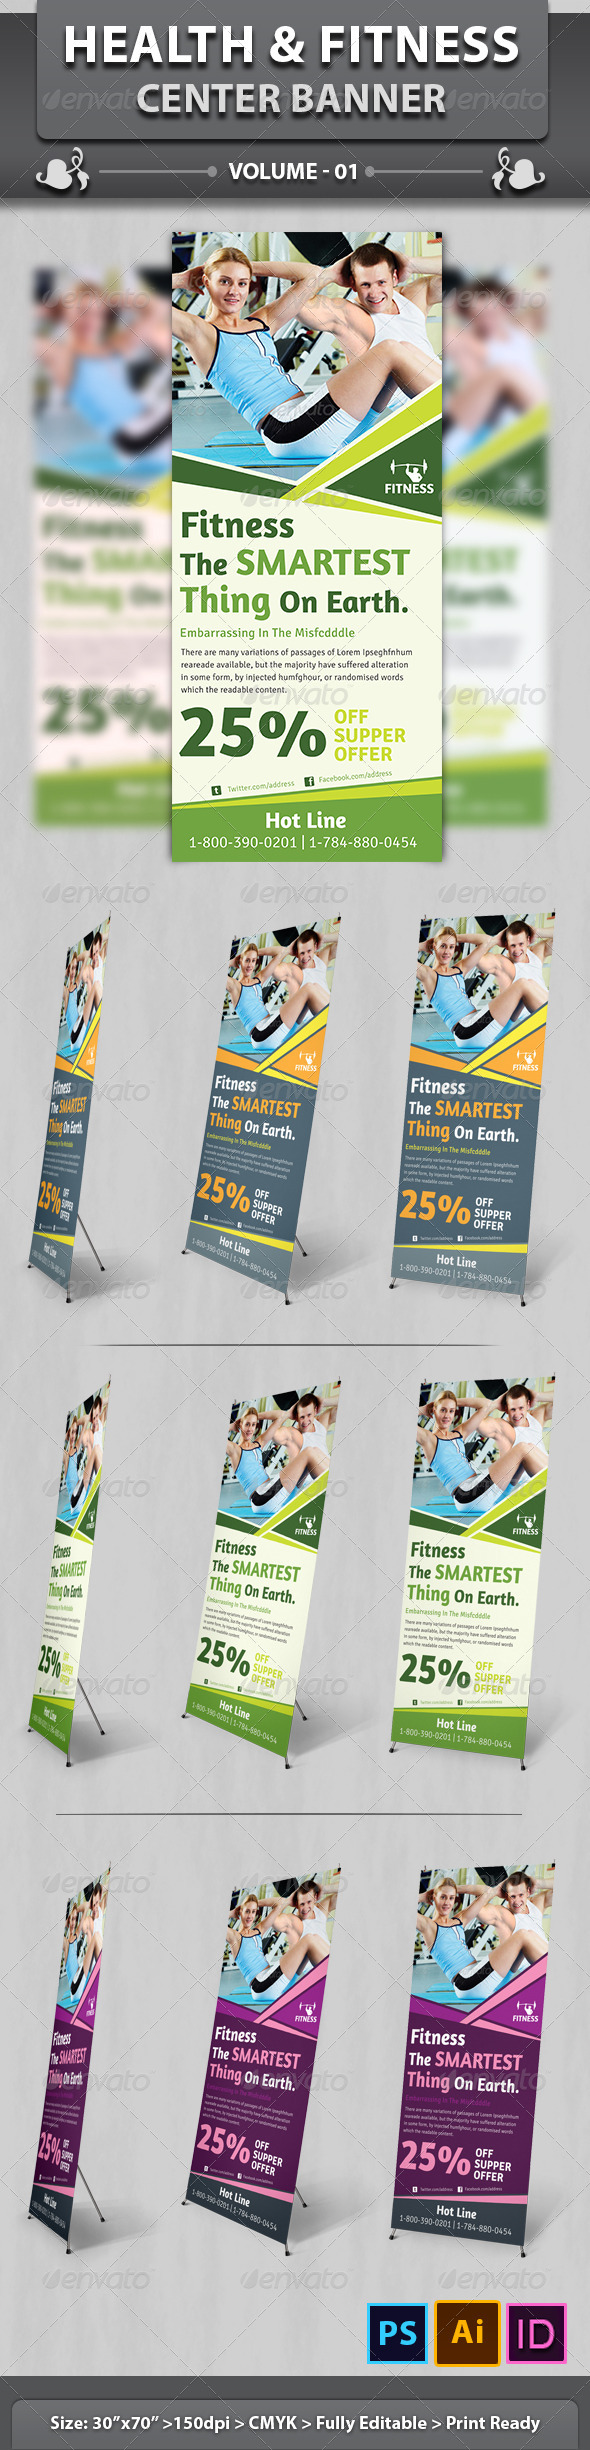 GraphicRiver Health & Fitness Center Banner Volume 1 6507522